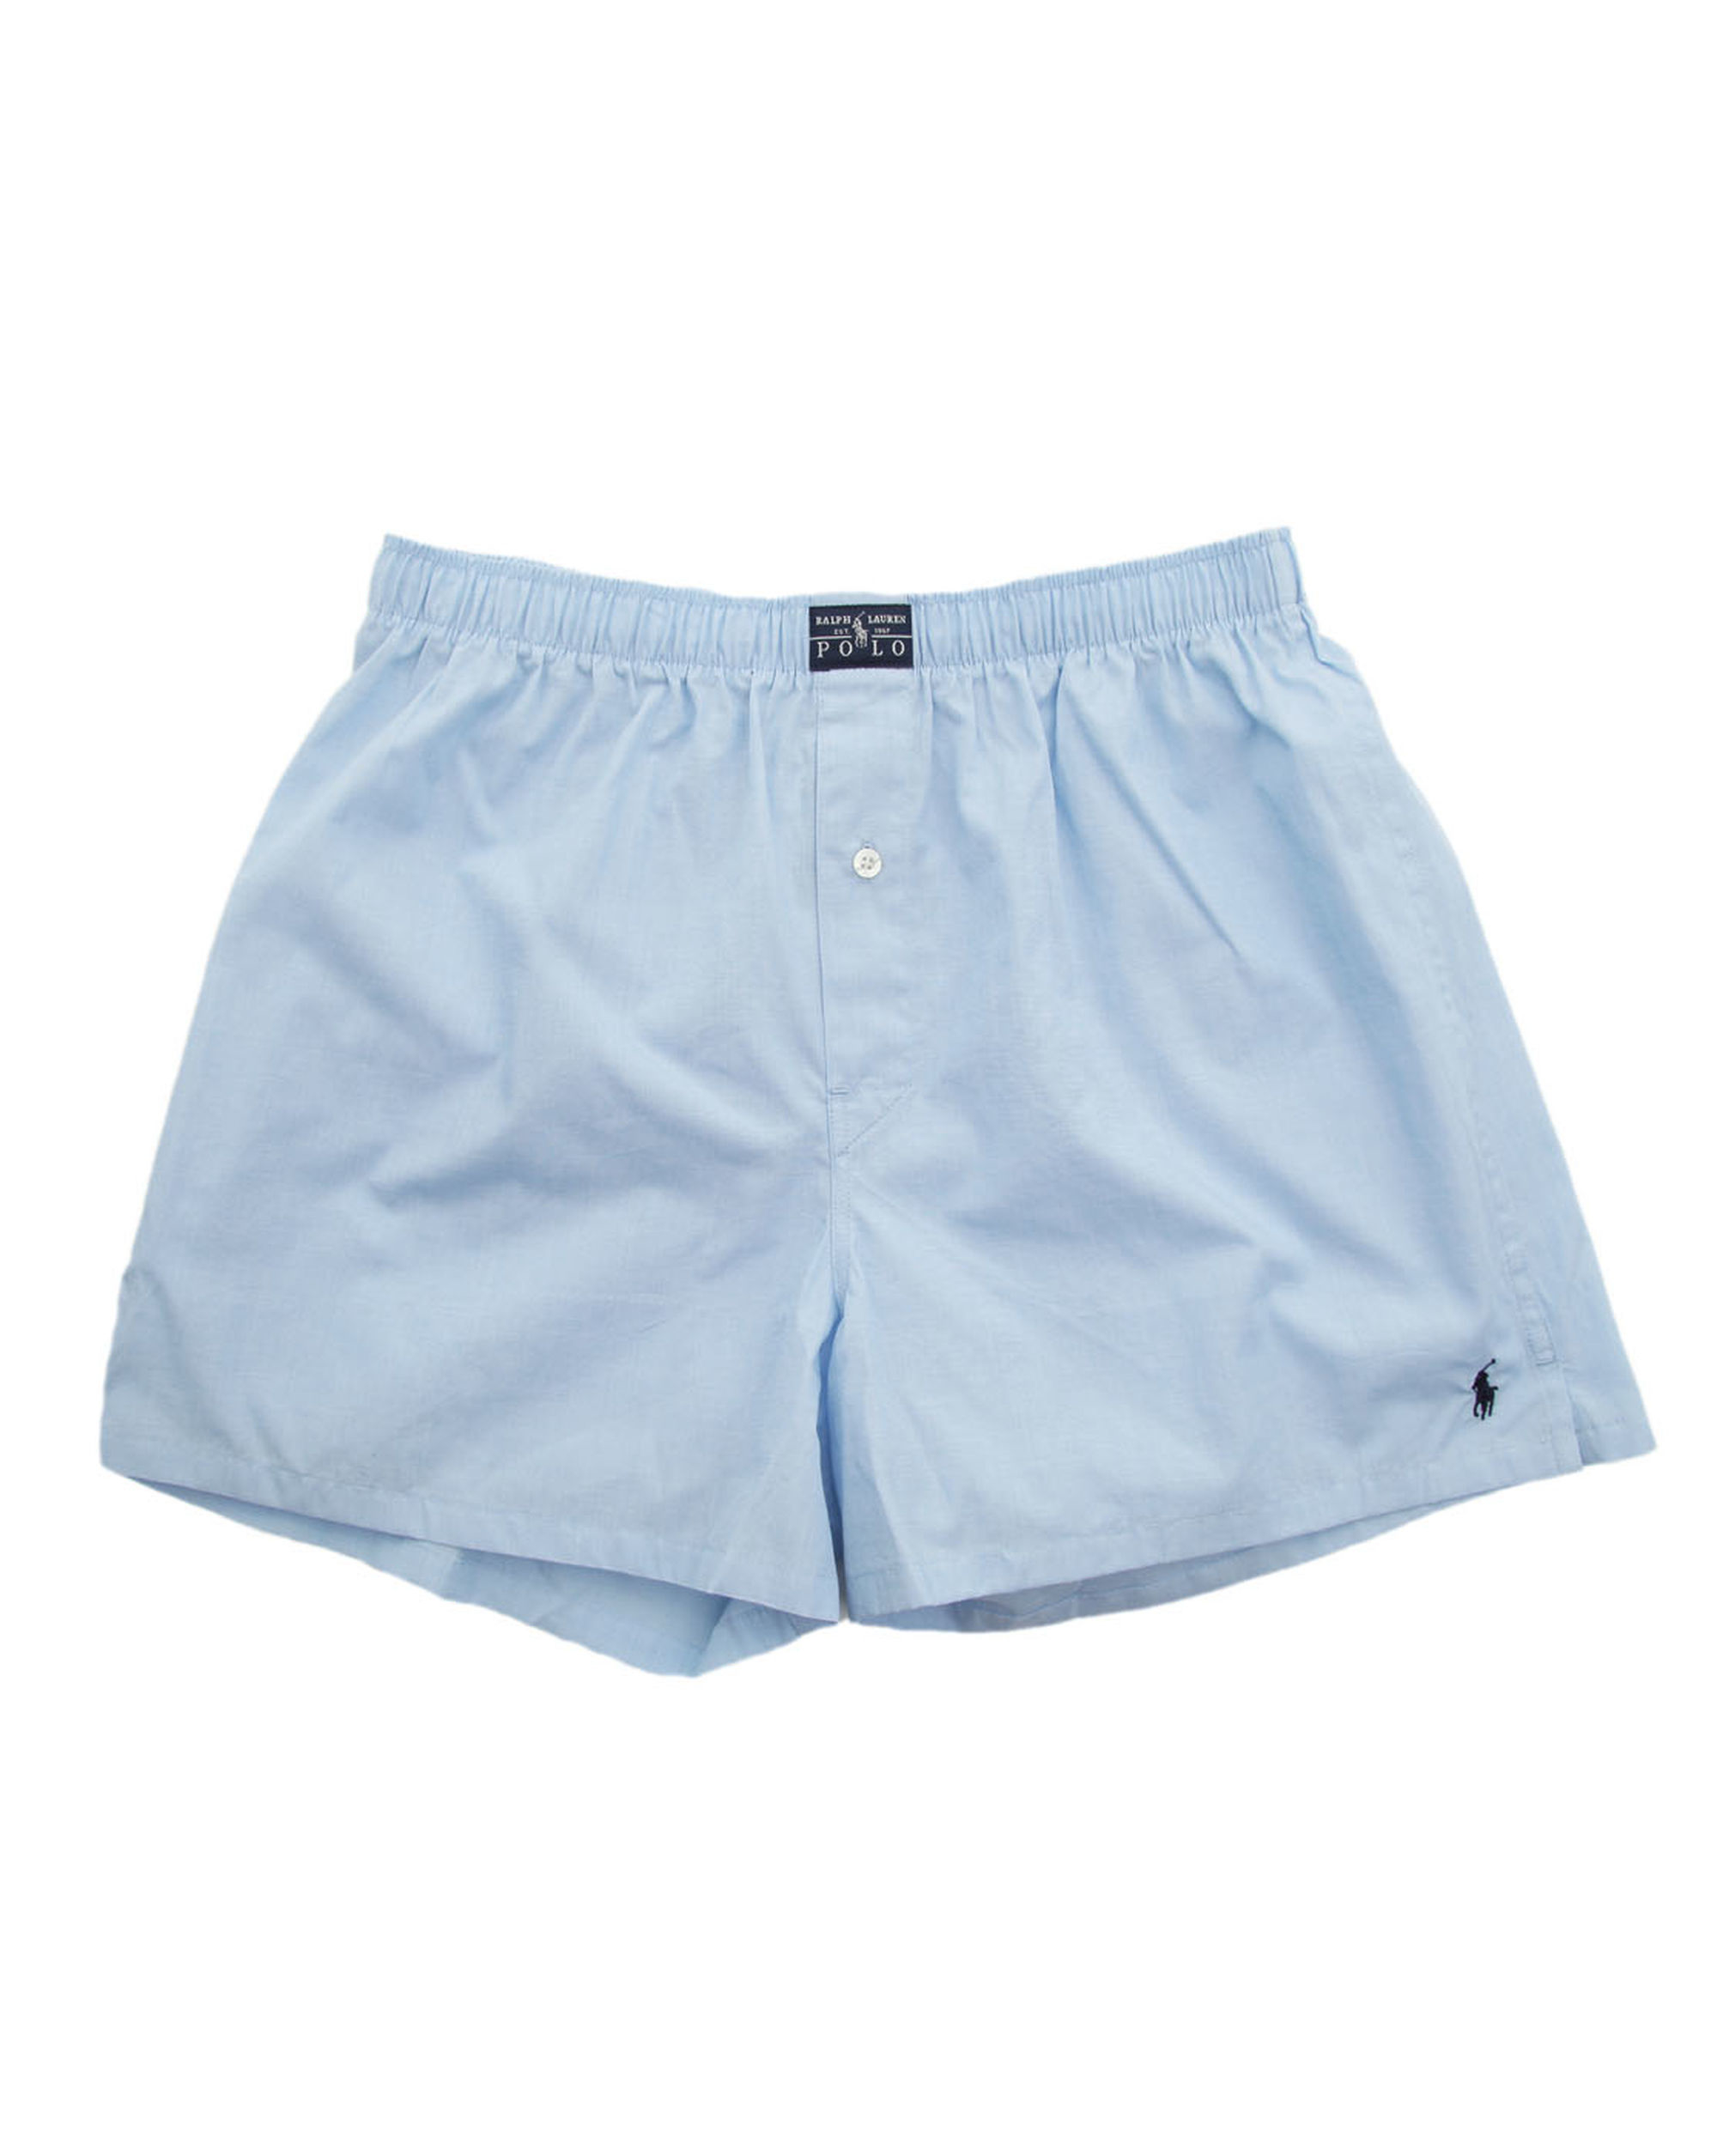 polo ralph lauren sky blue poplin boxer shorts in blue for. Black Bedroom Furniture Sets. Home Design Ideas